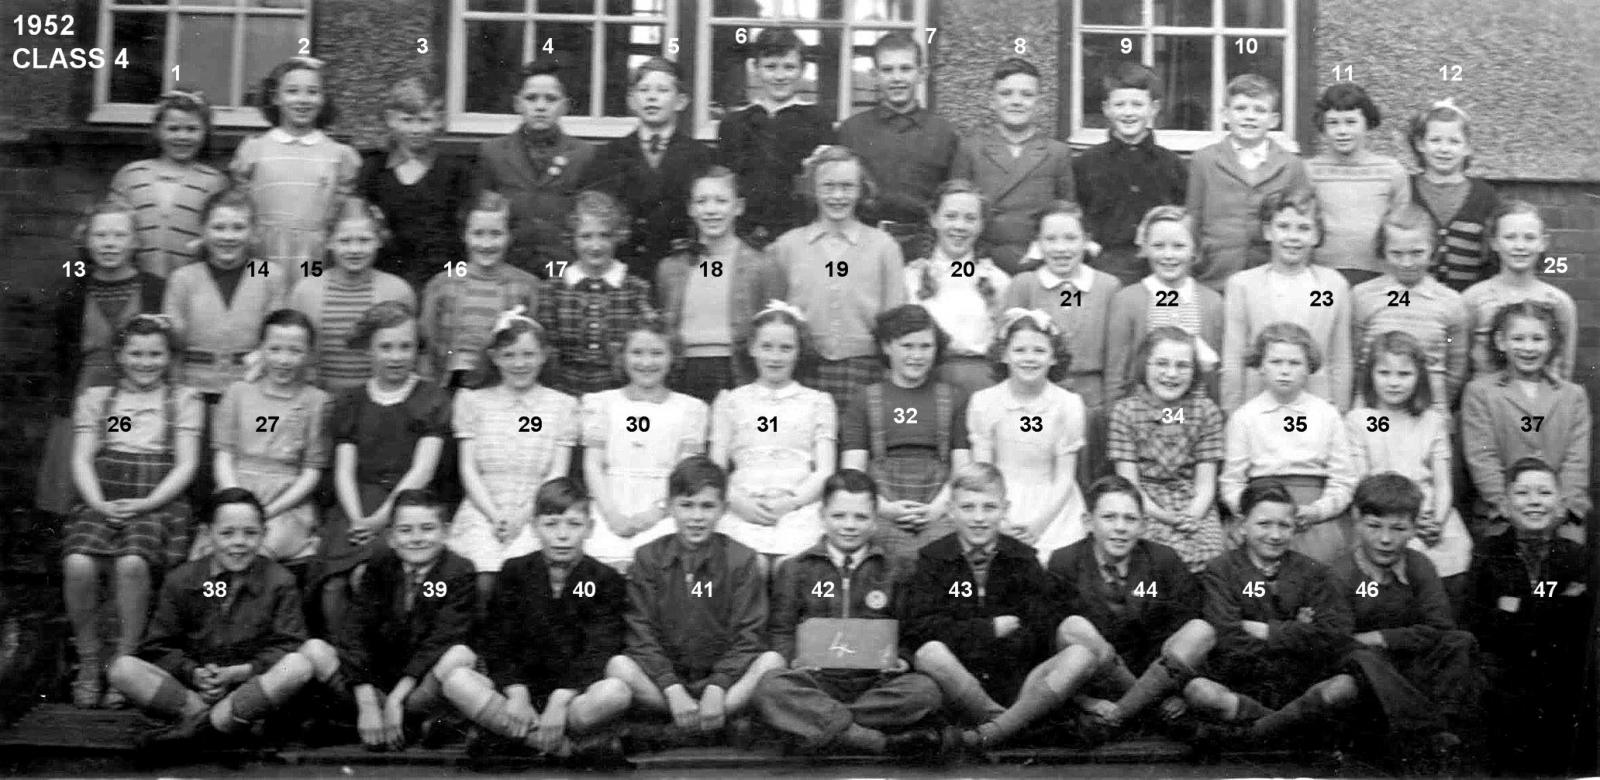 Bedlington Council Primary School (now West End) Class 4 1952.